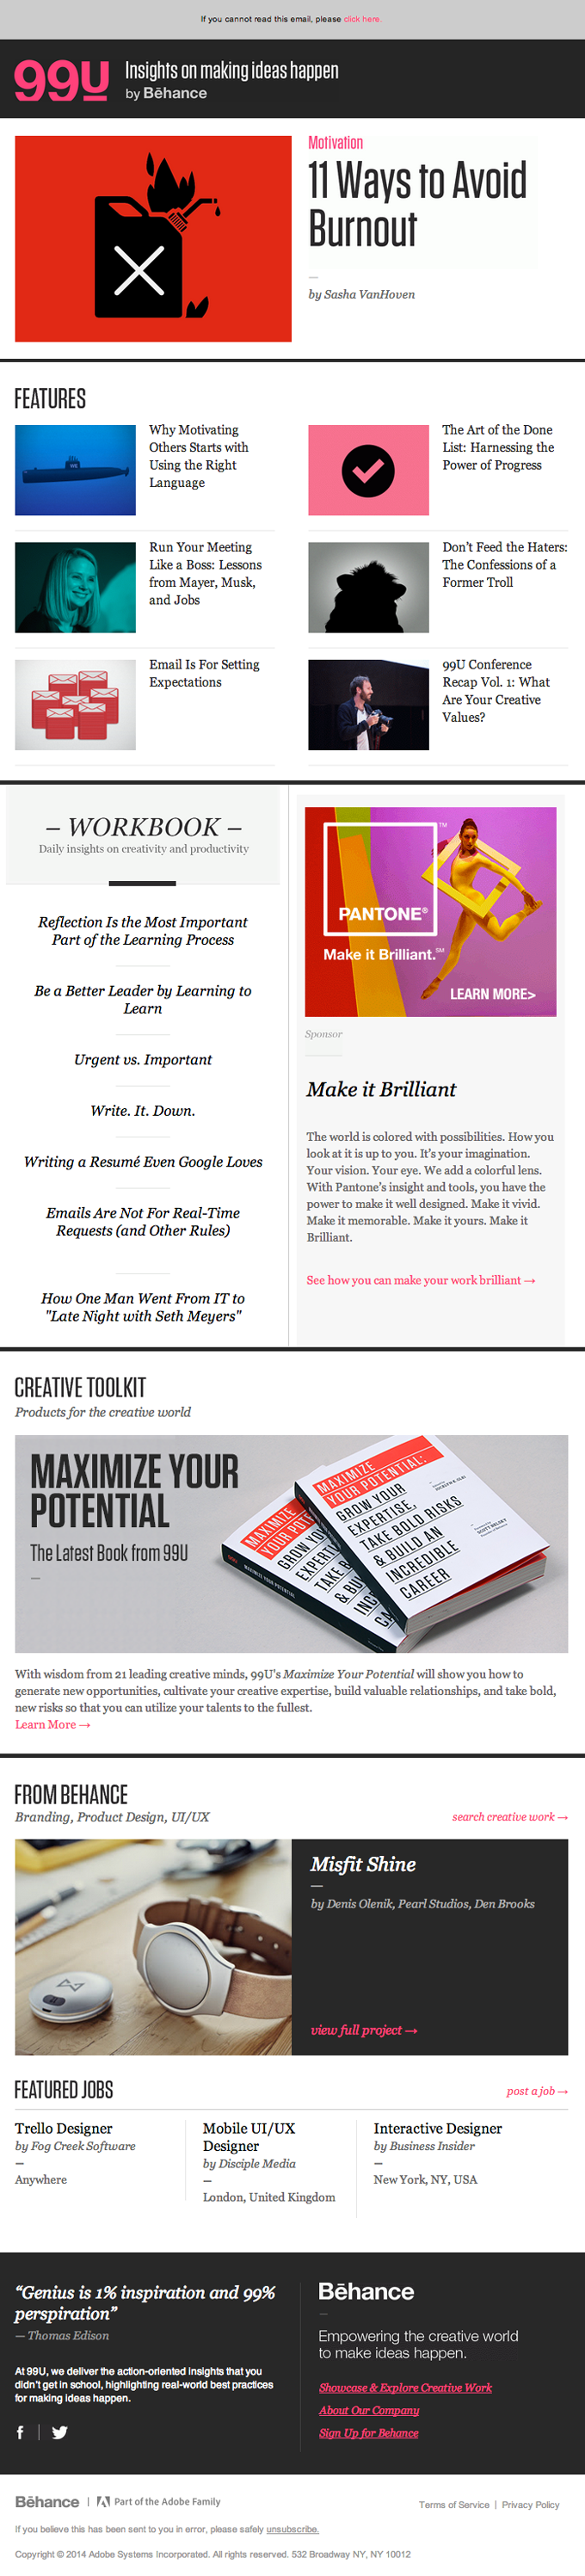 Email Newsletter Design from Behance | Really Good Emails